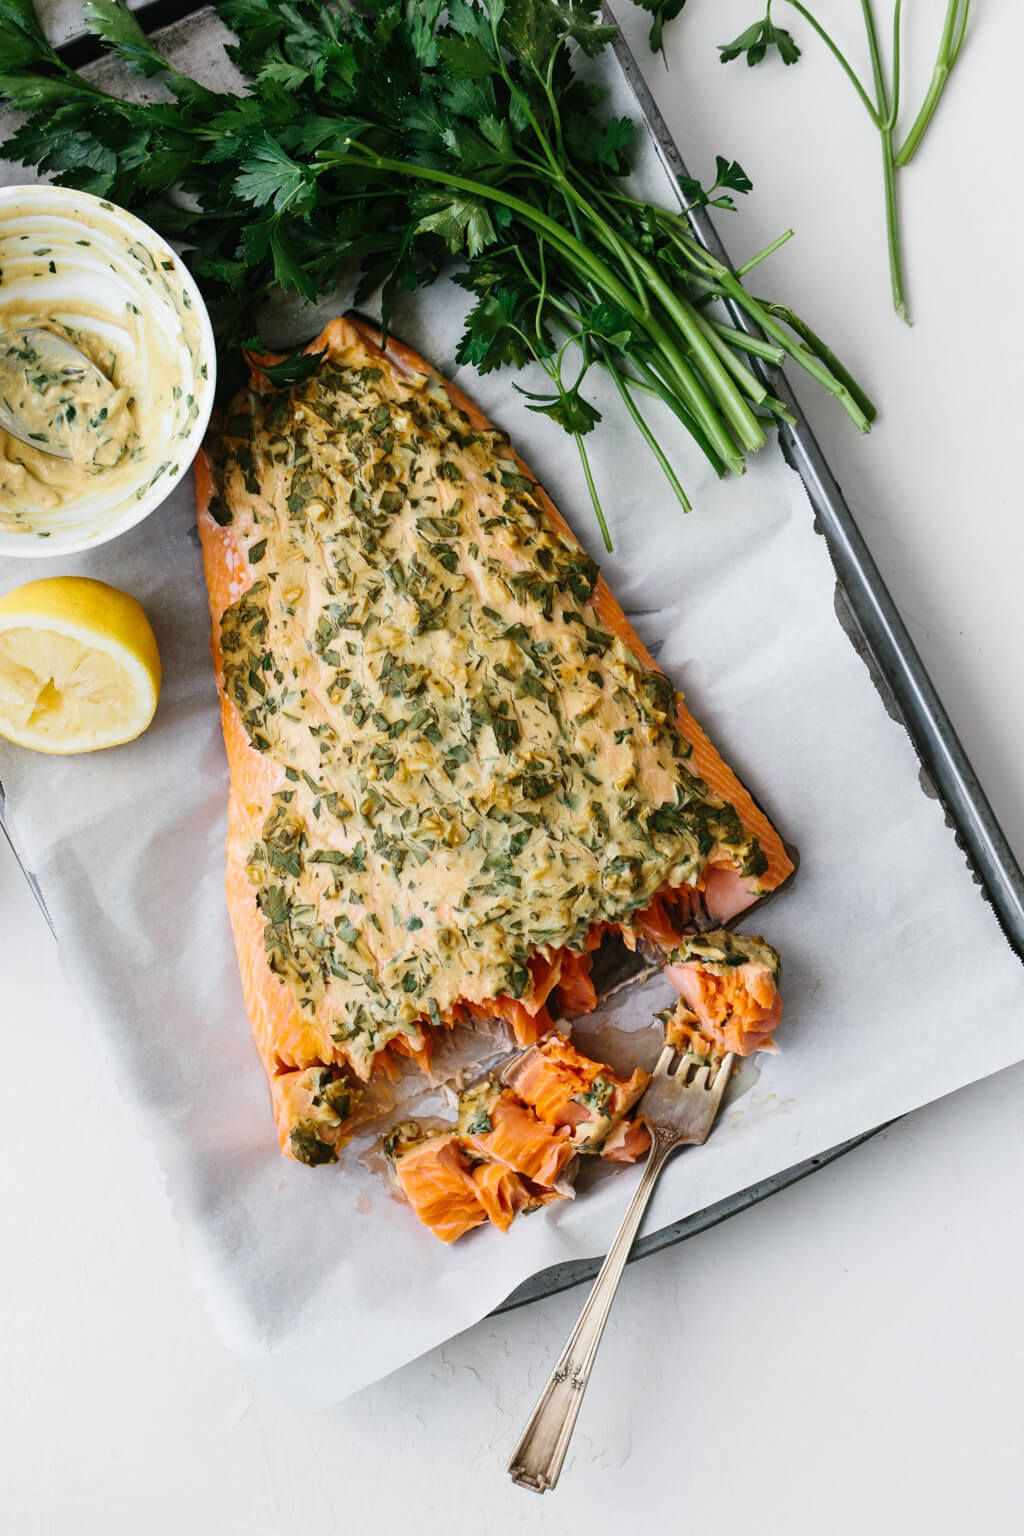 Dijon Baked Salmon Is One Of My Favorite Easy Salmon Recipes It S Incredibly Flavorful And The Dijon Top Easy Salmon Recipes Baked Salmon Recipes Baked Salmon